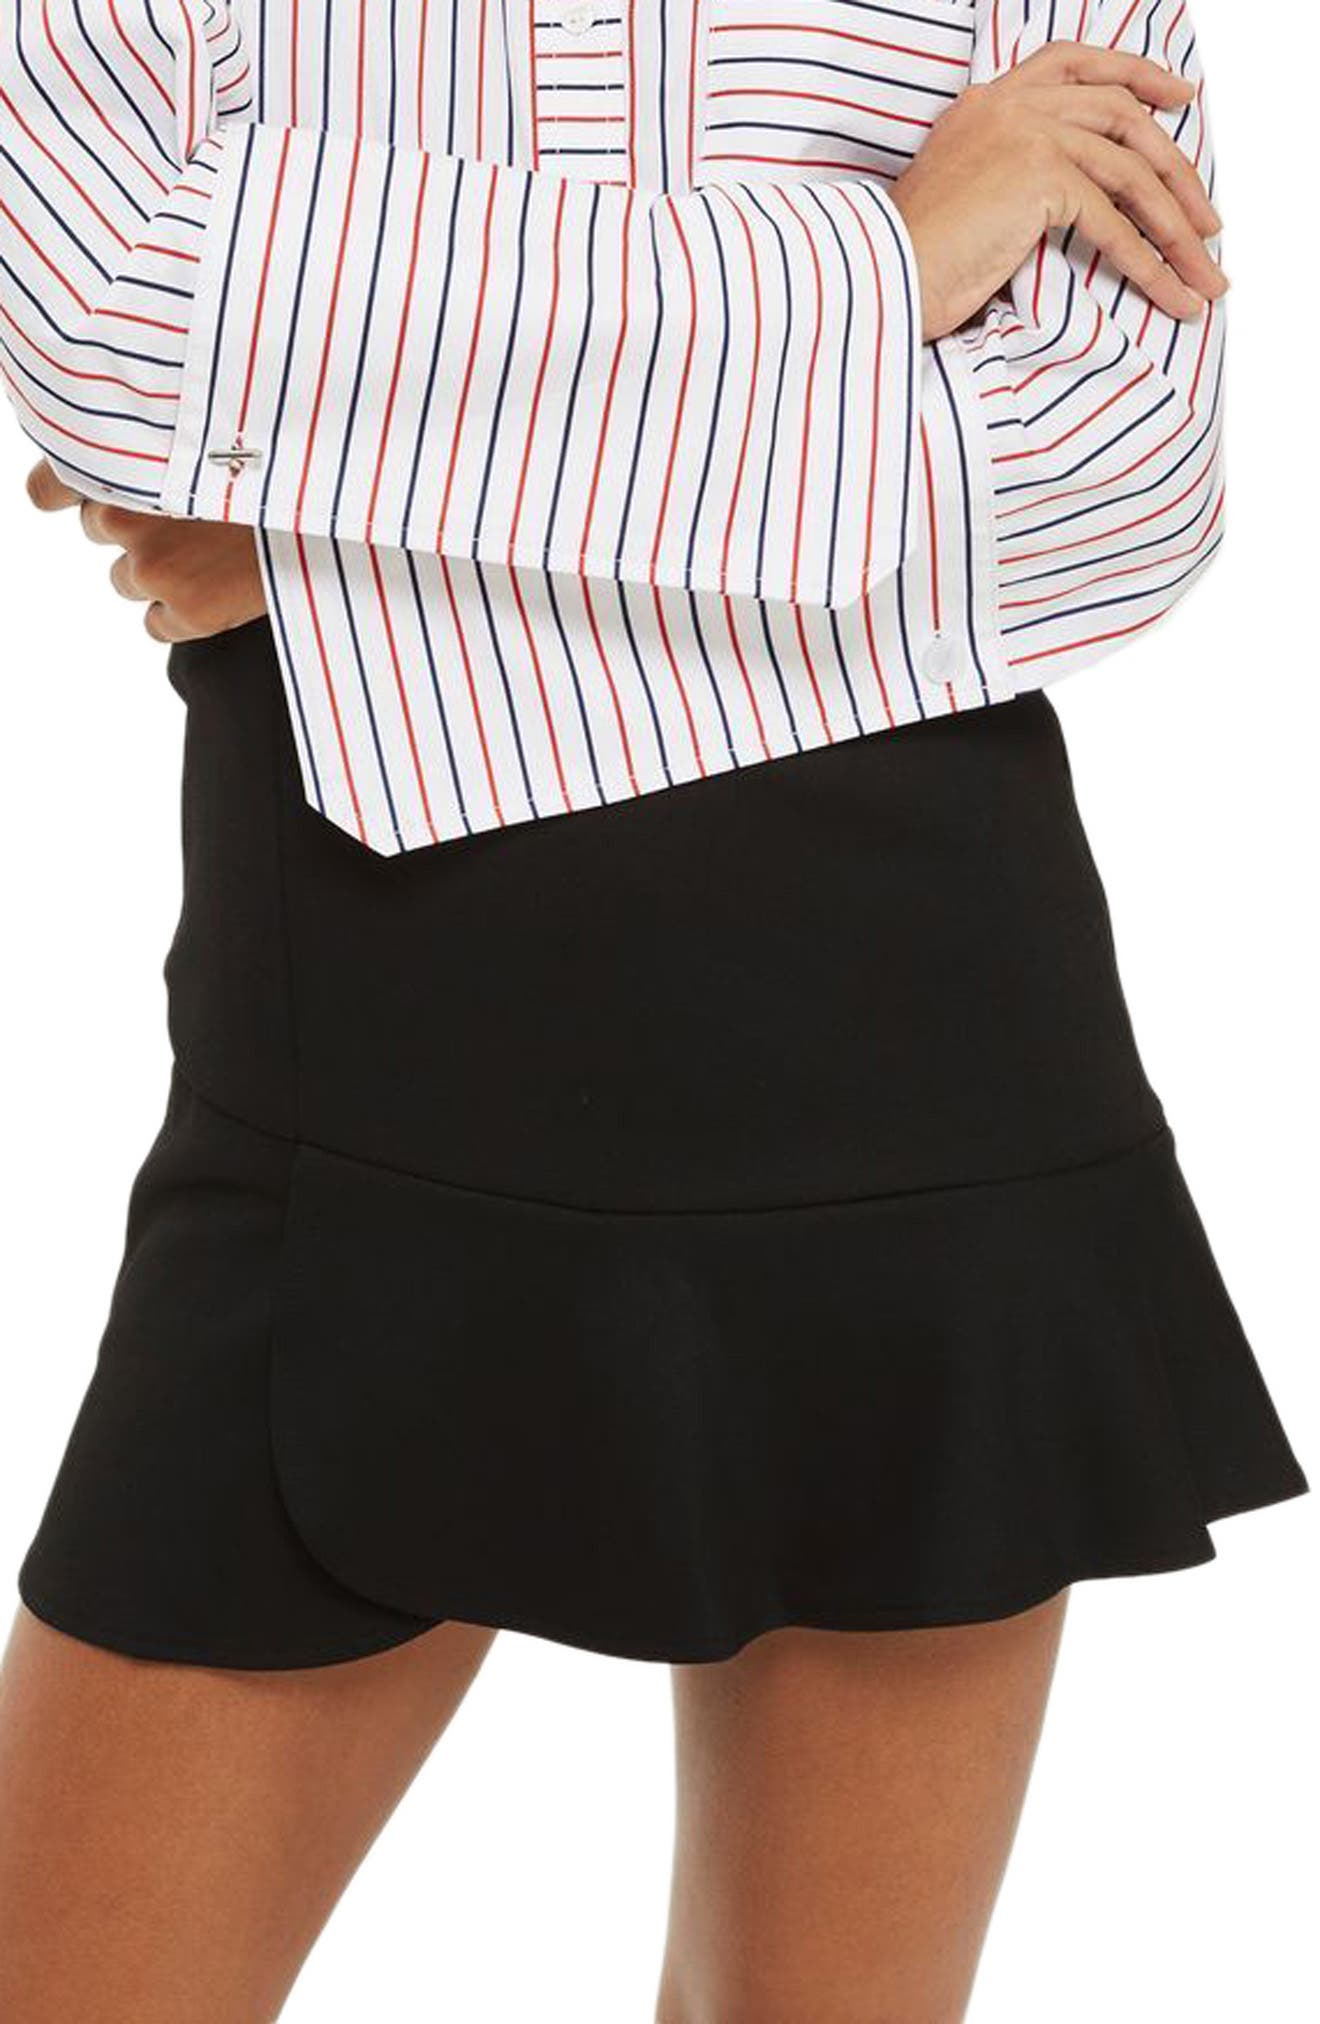 Paneled Flippy Miniskirt,                             Main thumbnail 1, color,                             Black